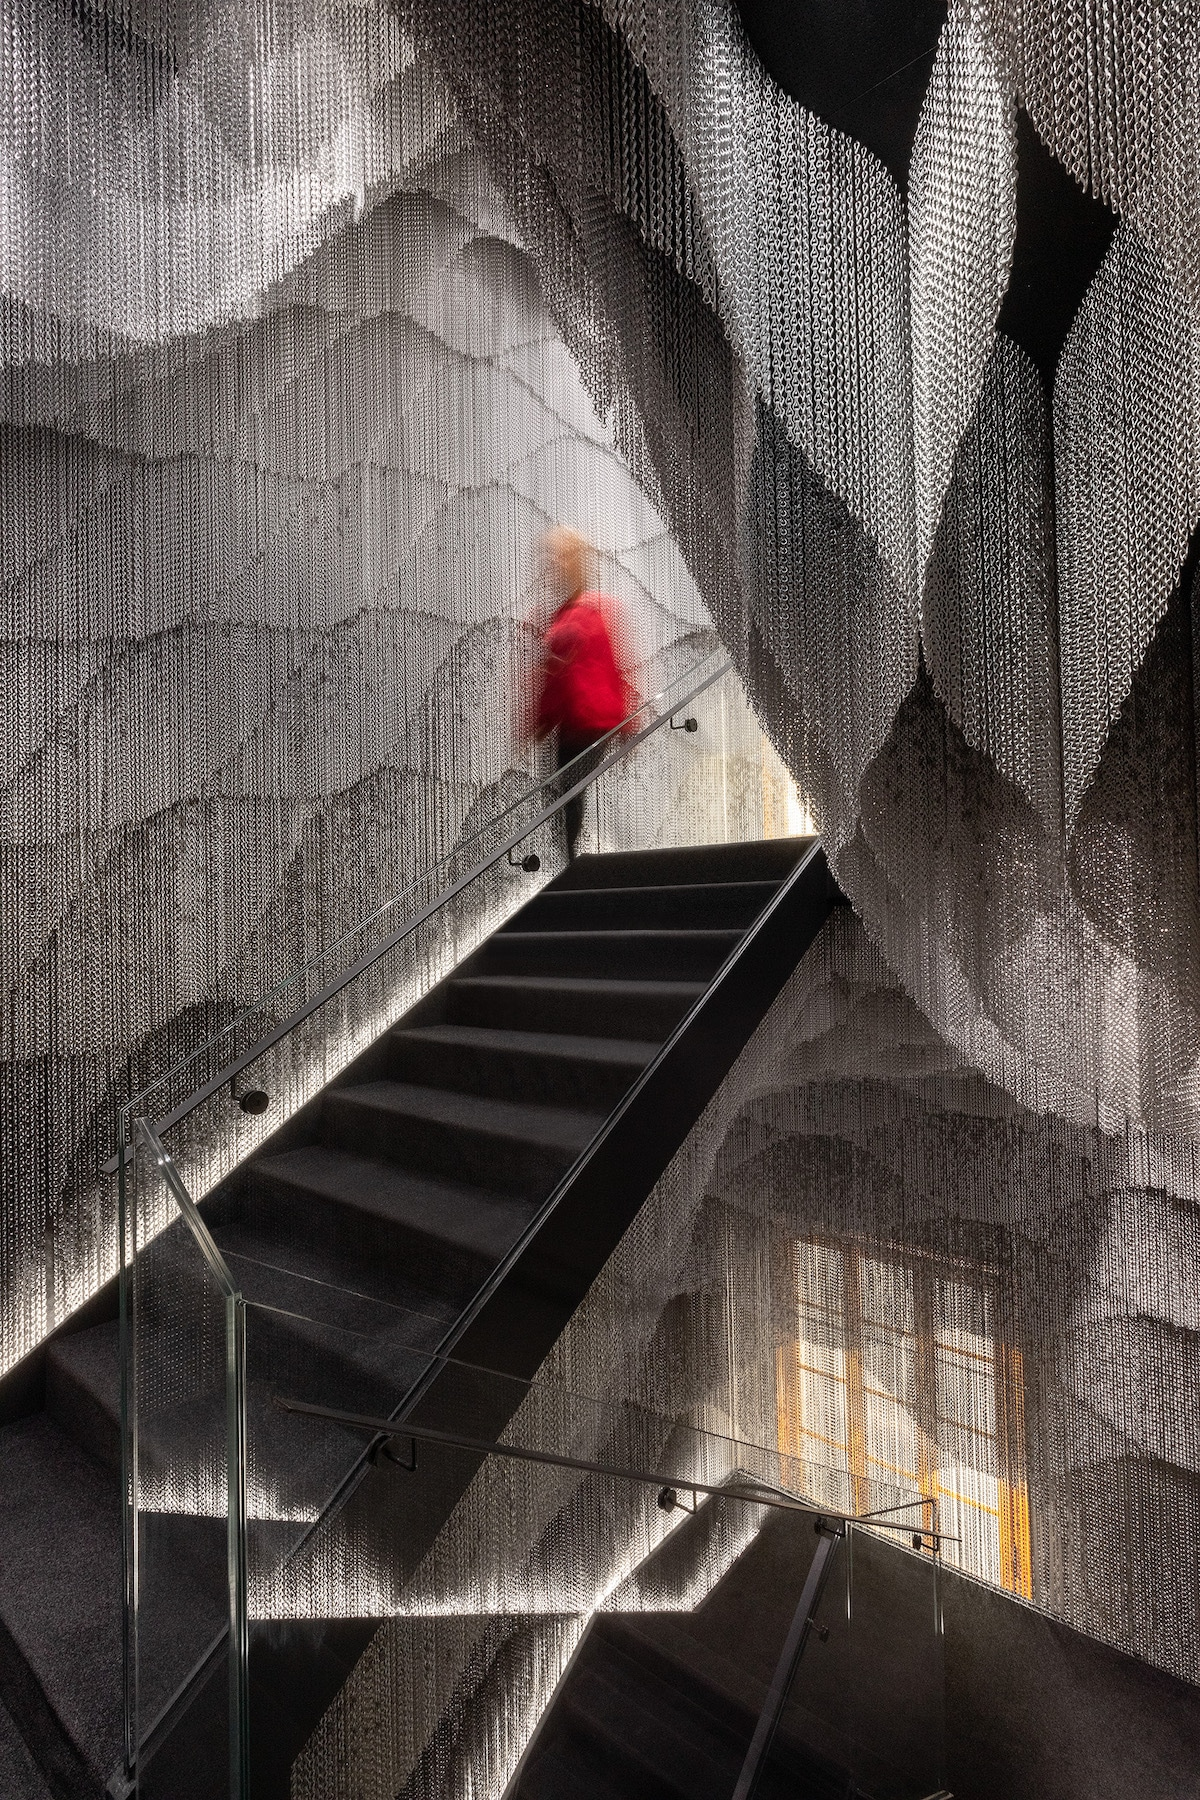 Person Passing Inside Kengo Kuma Aluminum Chain Staircase in Gaudí's Casa Batlló, Captured by Jordi Anguera